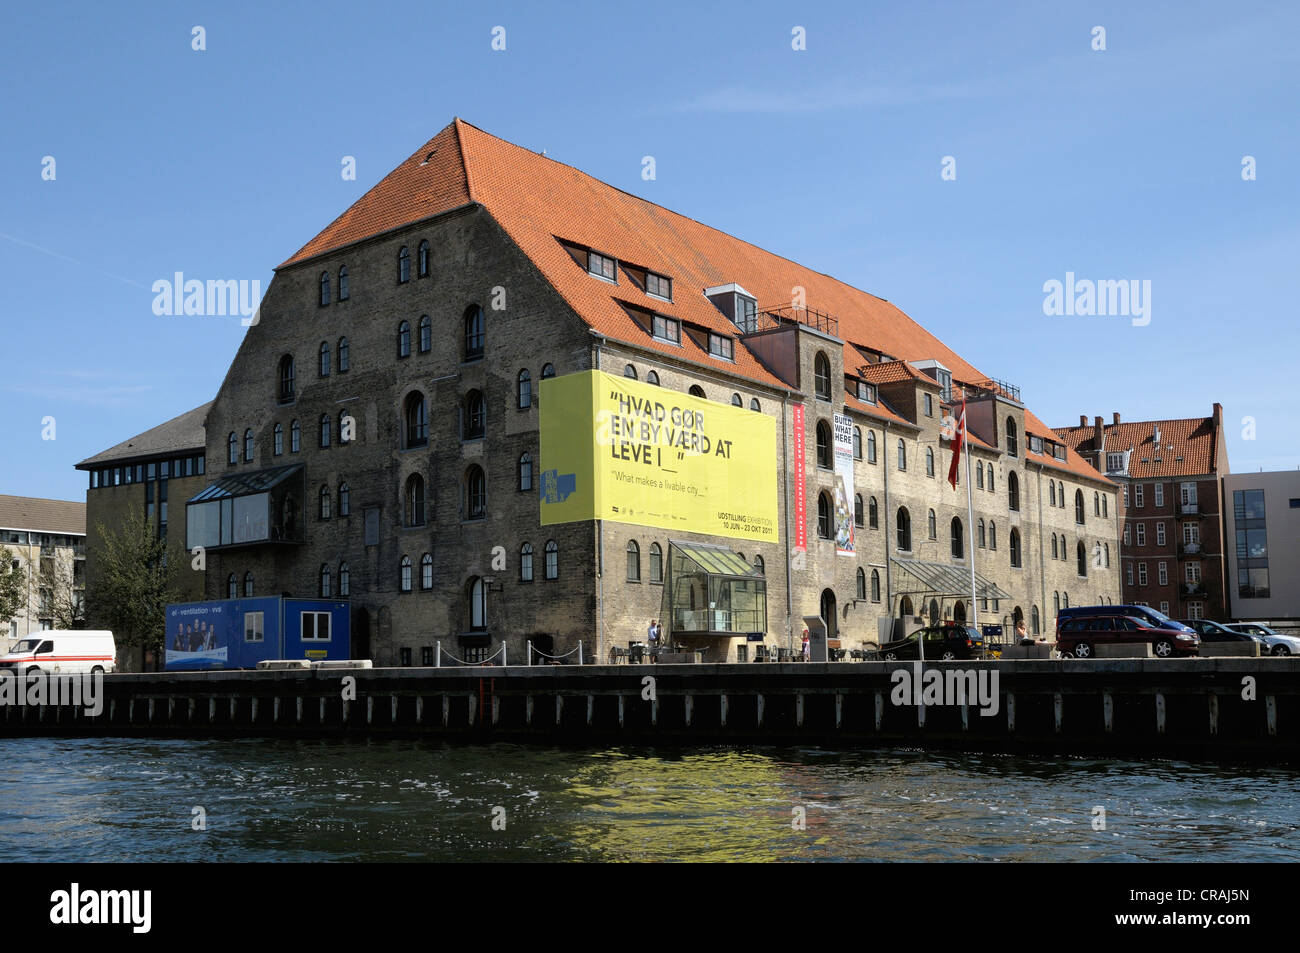 Dansk Arkitektur Center or Danish Architecture Center, Copenhagen, Denmark, Scandinavia, Europe, PublicGround - Stock Image